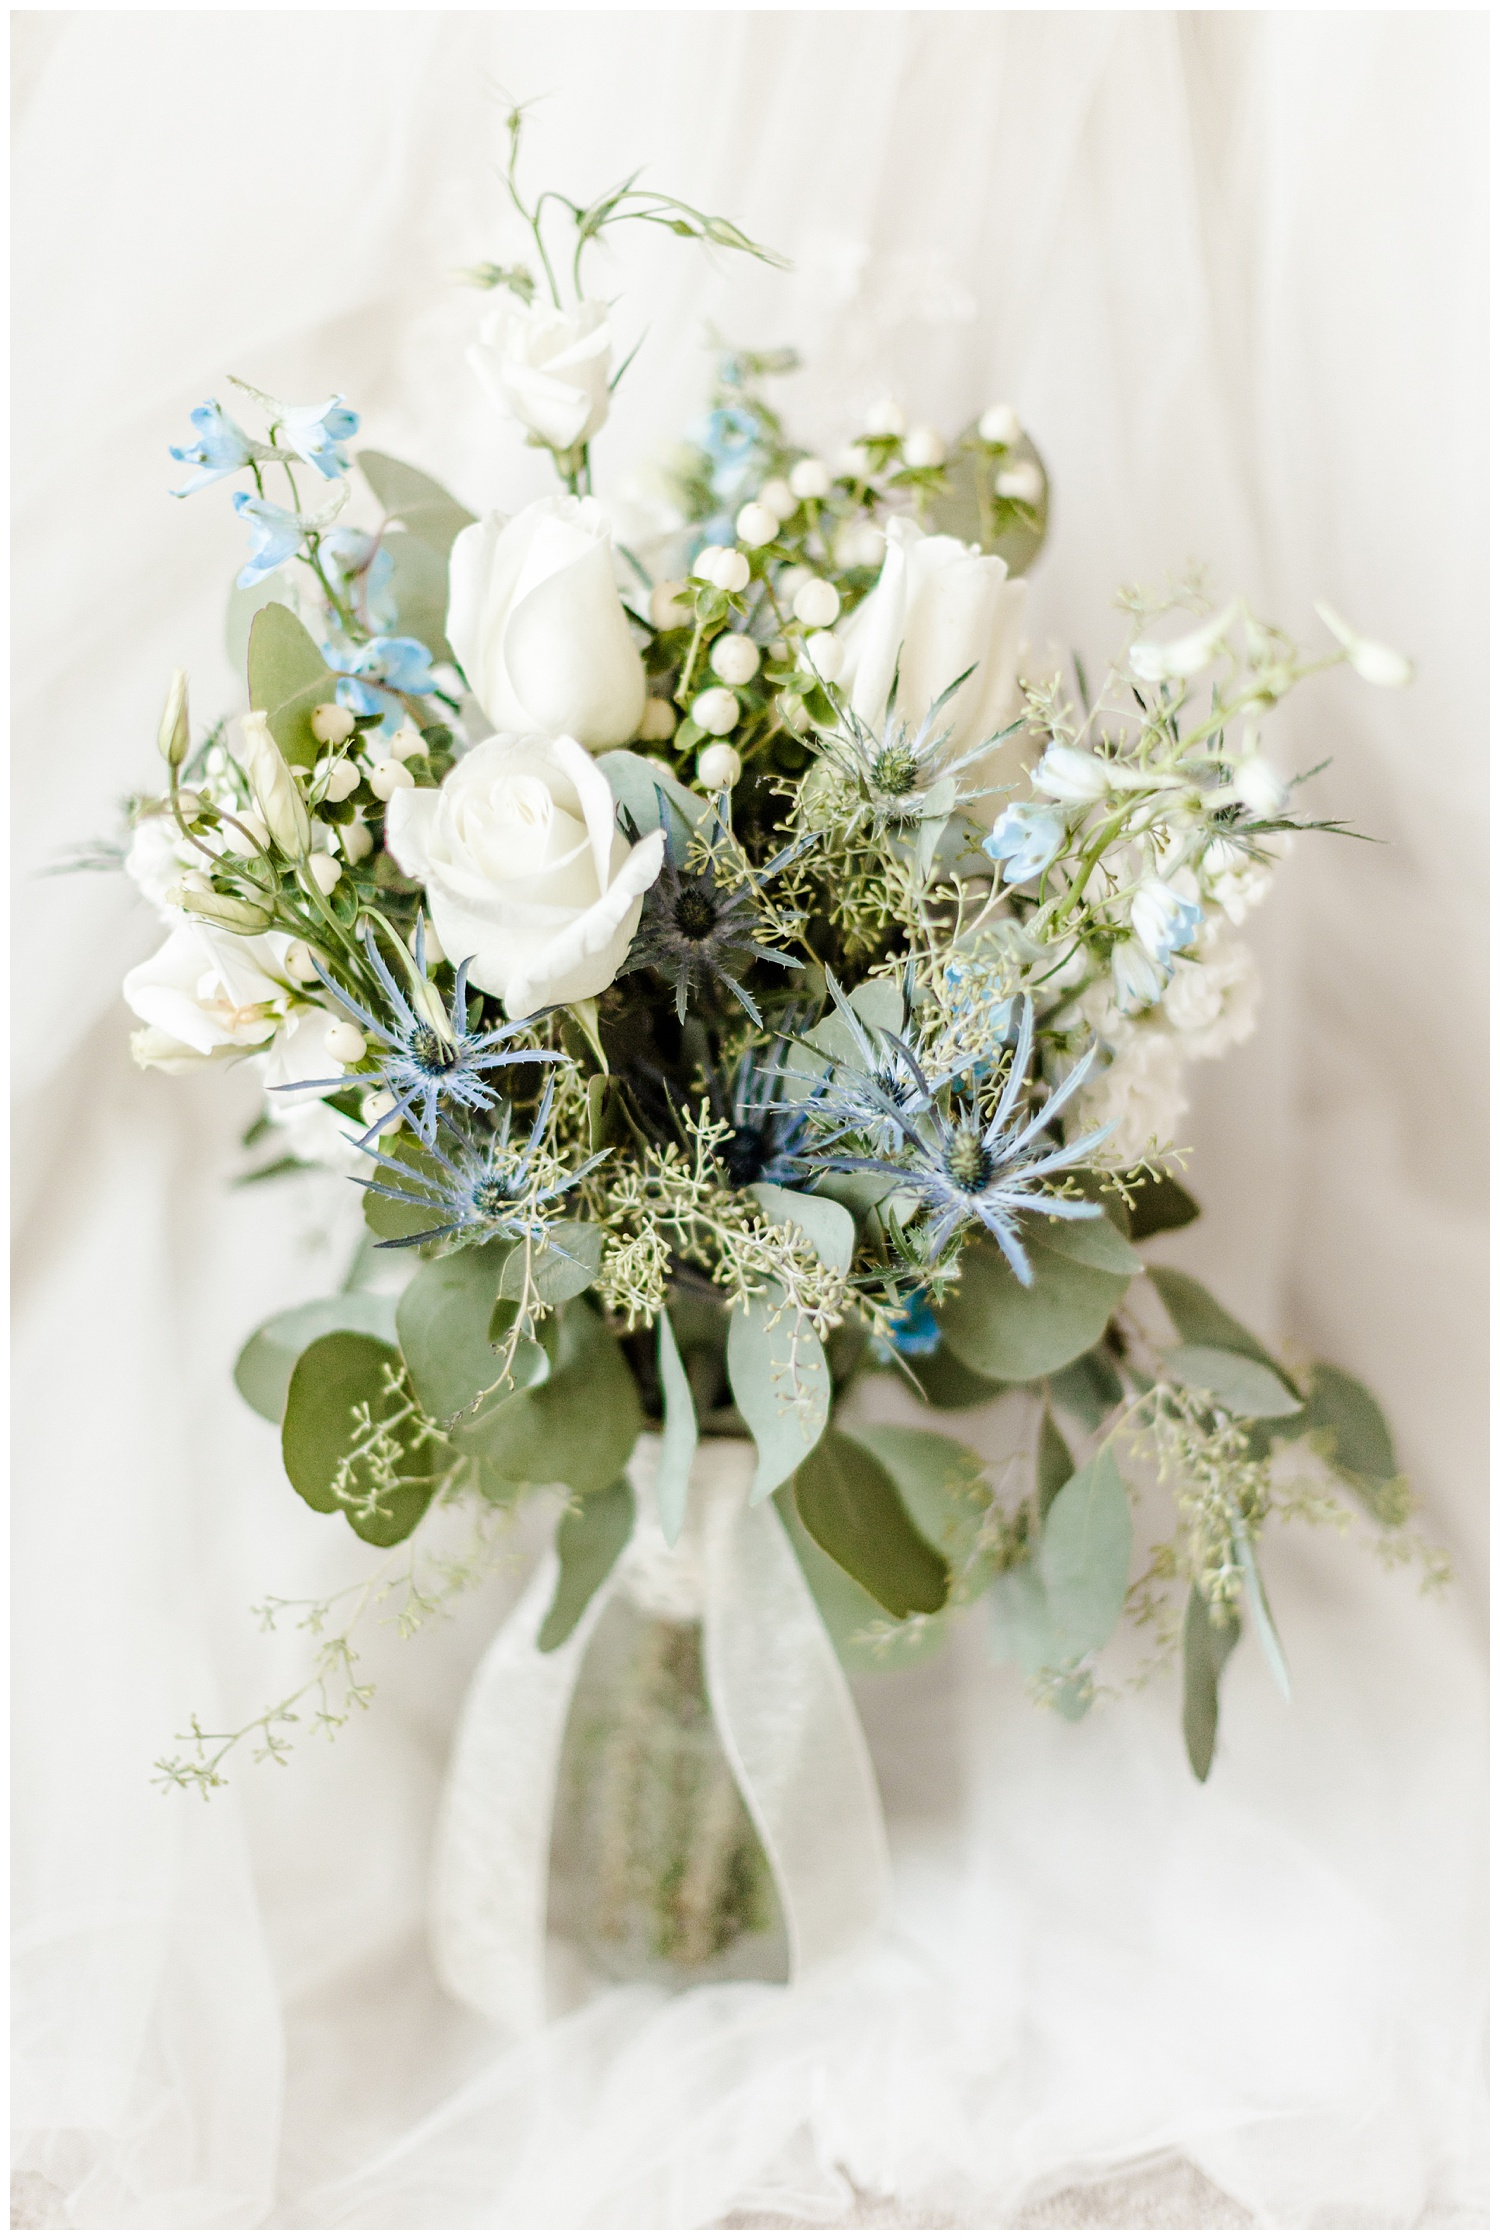 Loose gathered bridal bouquet with white roses, eucalyptus, sea holly and white hypericum berries   CB Studio